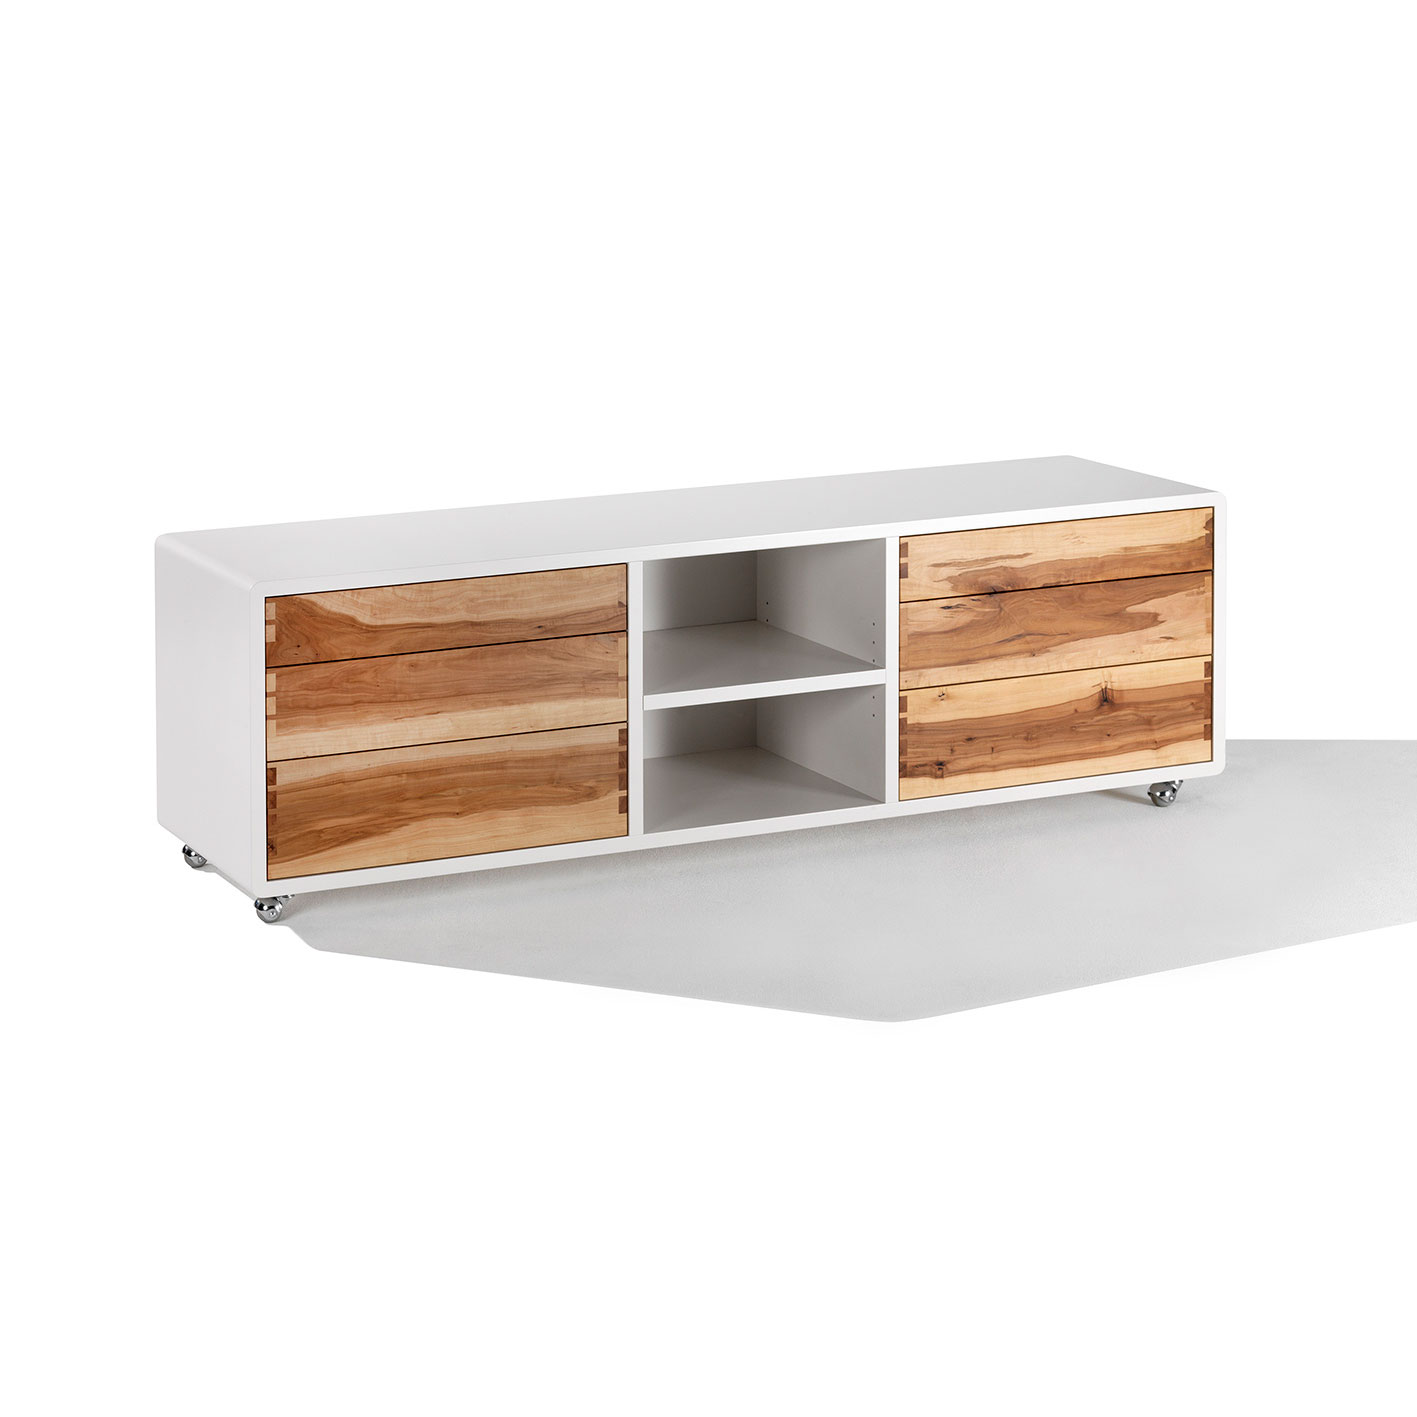 sideboard und schubladen m bel aus massivem holz nach mass. Black Bedroom Furniture Sets. Home Design Ideas